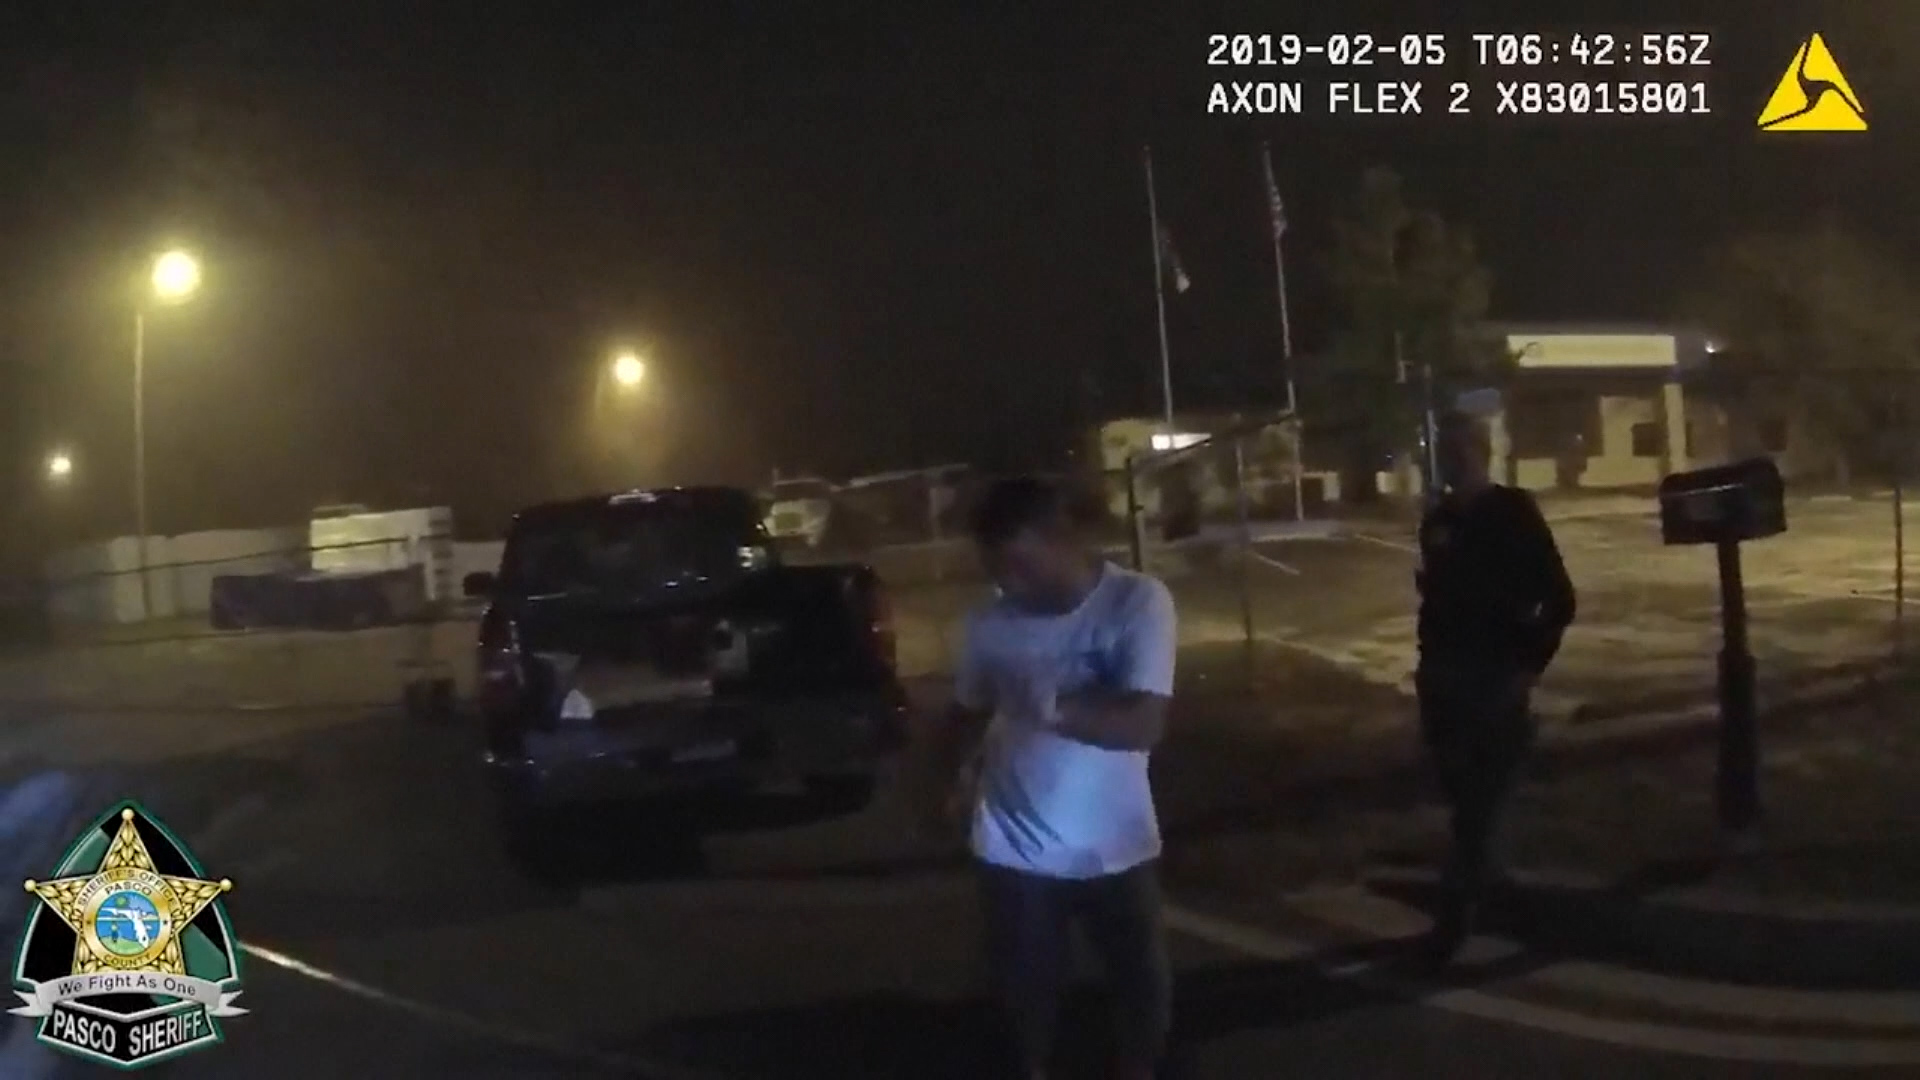 Florida man dances through DUI sobriety test